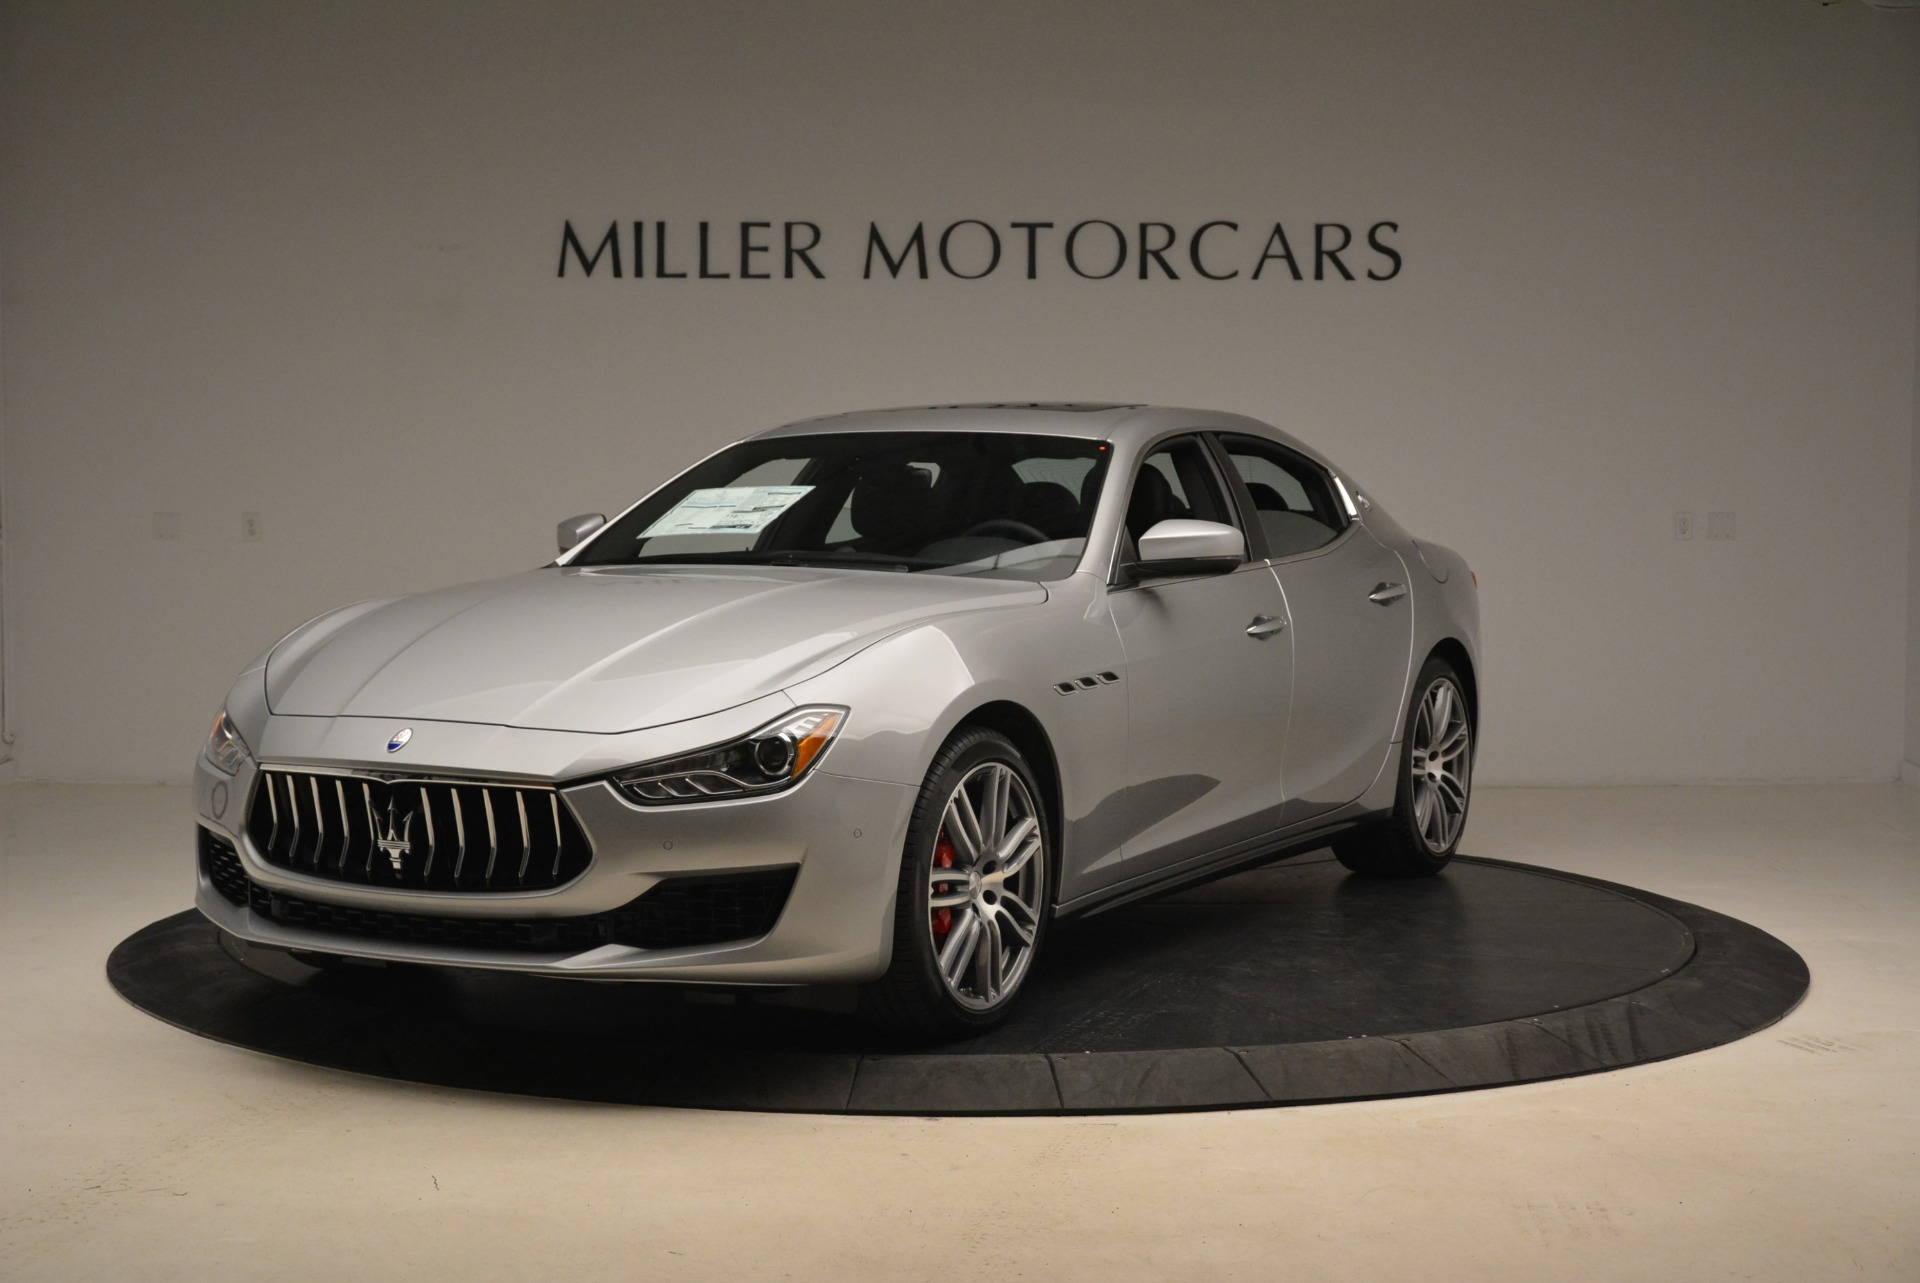 Used 2018 Maserati Ghibli S Q4 for sale Sold at Alfa Romeo of Greenwich in Greenwich CT 06830 1